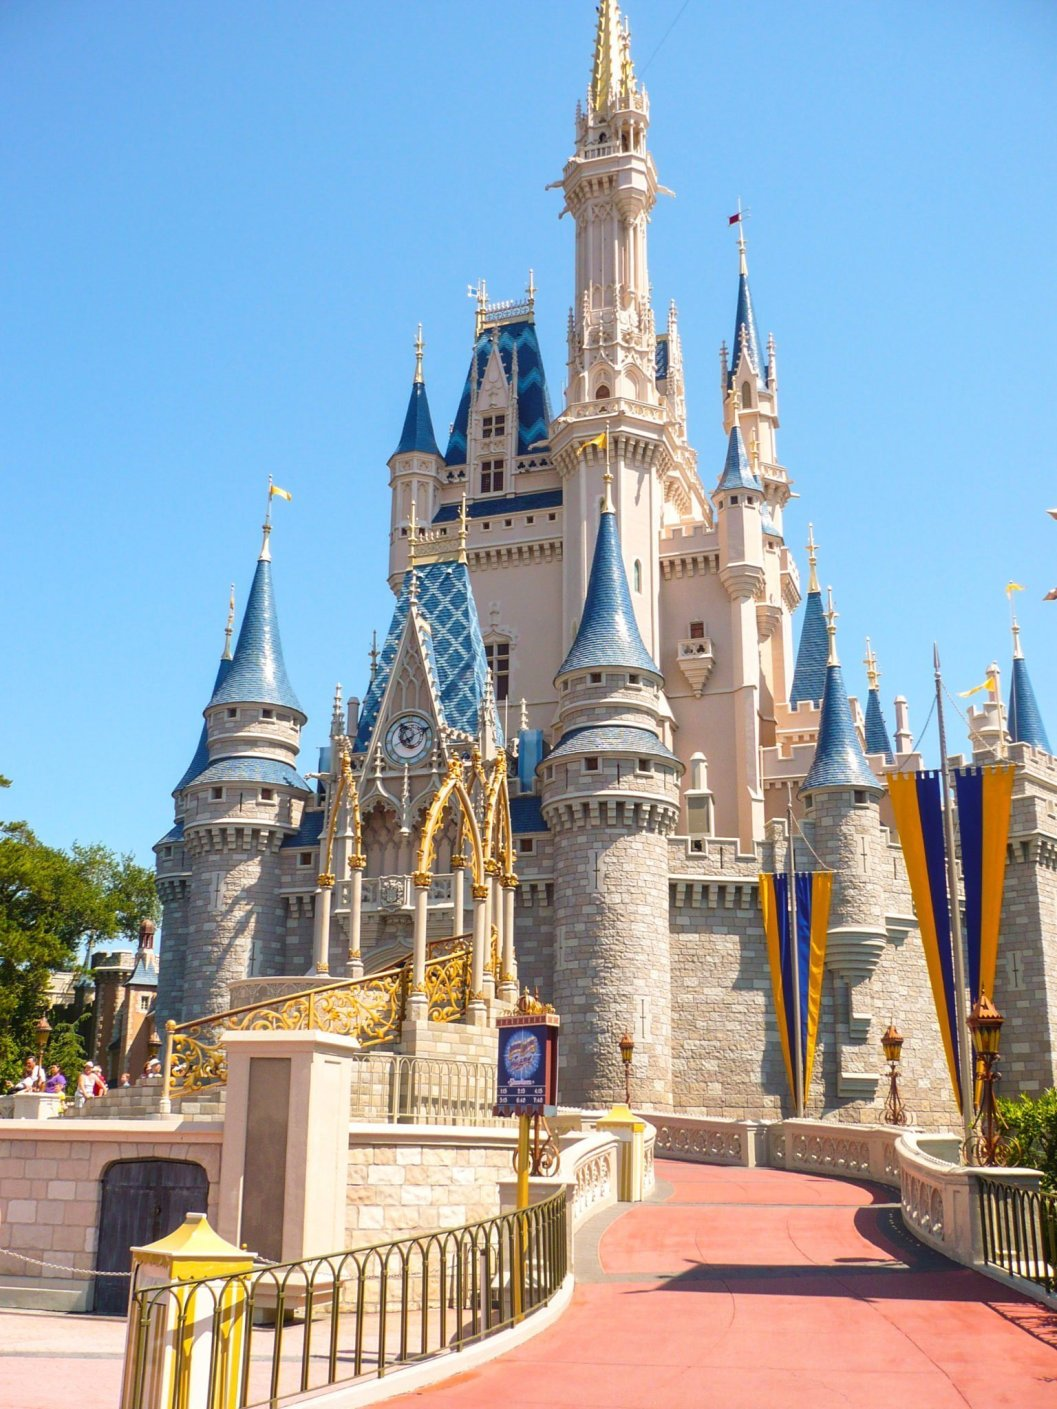 Cinderella Castle, Magic Kingdom, The Walt Disney World